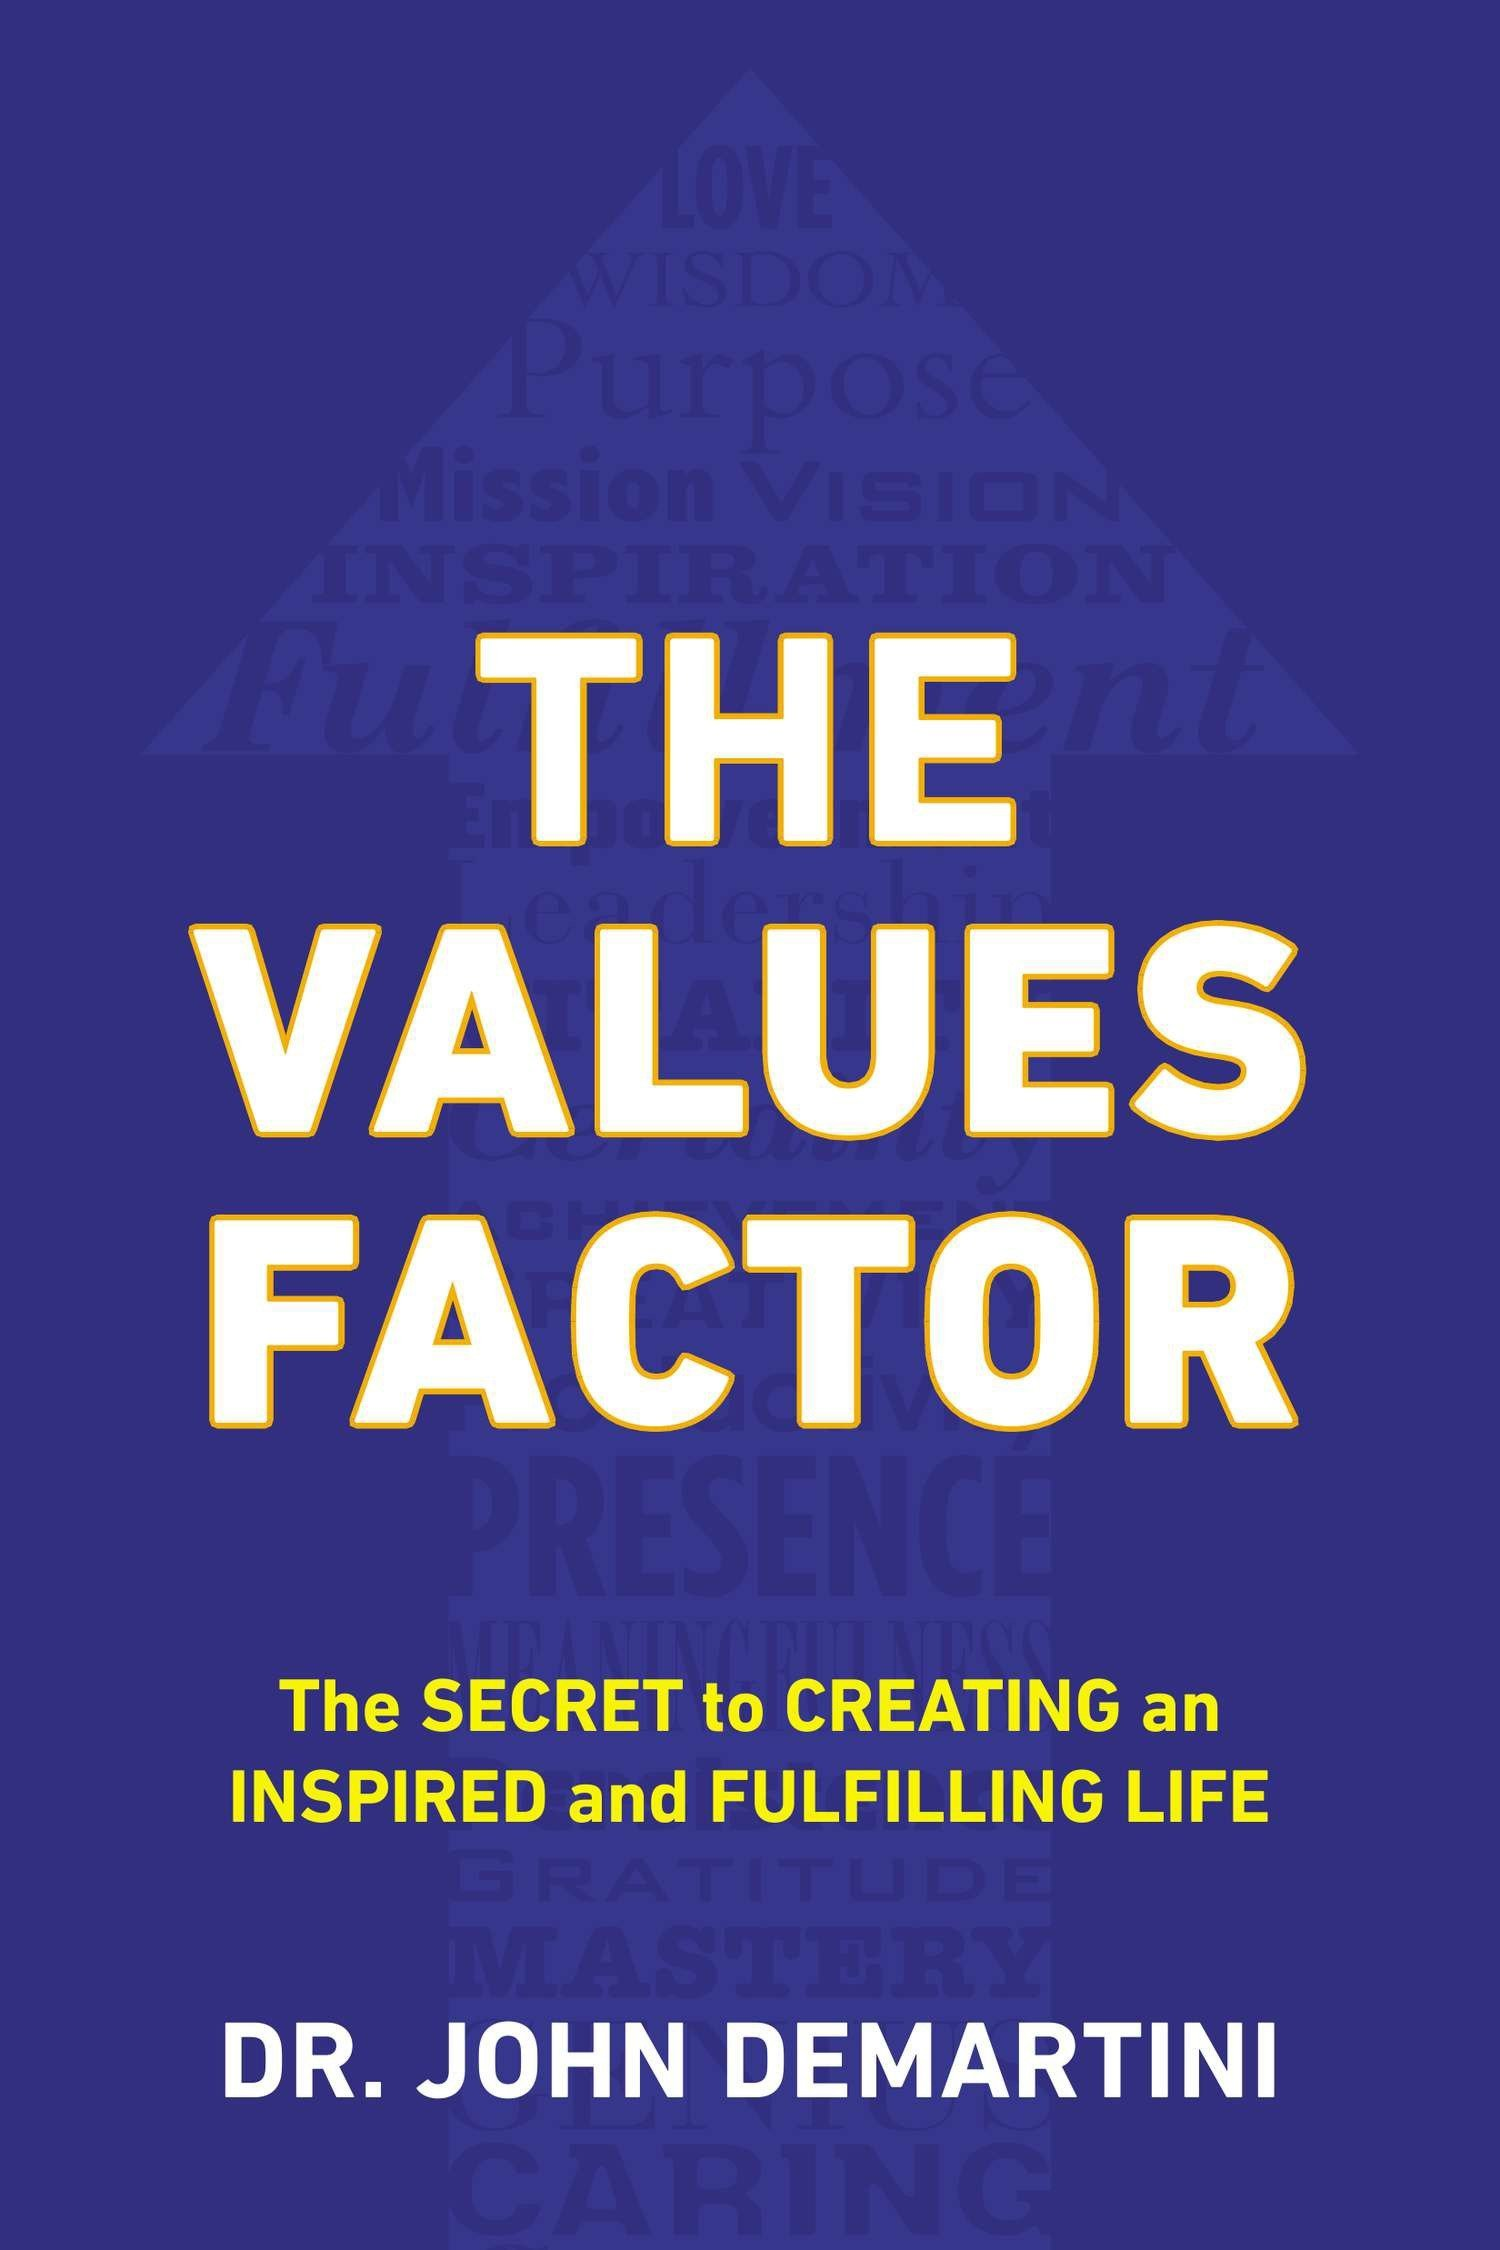 Download The Values Factor: The Secret to Creating an Inspired and Fulfilling Life PDF